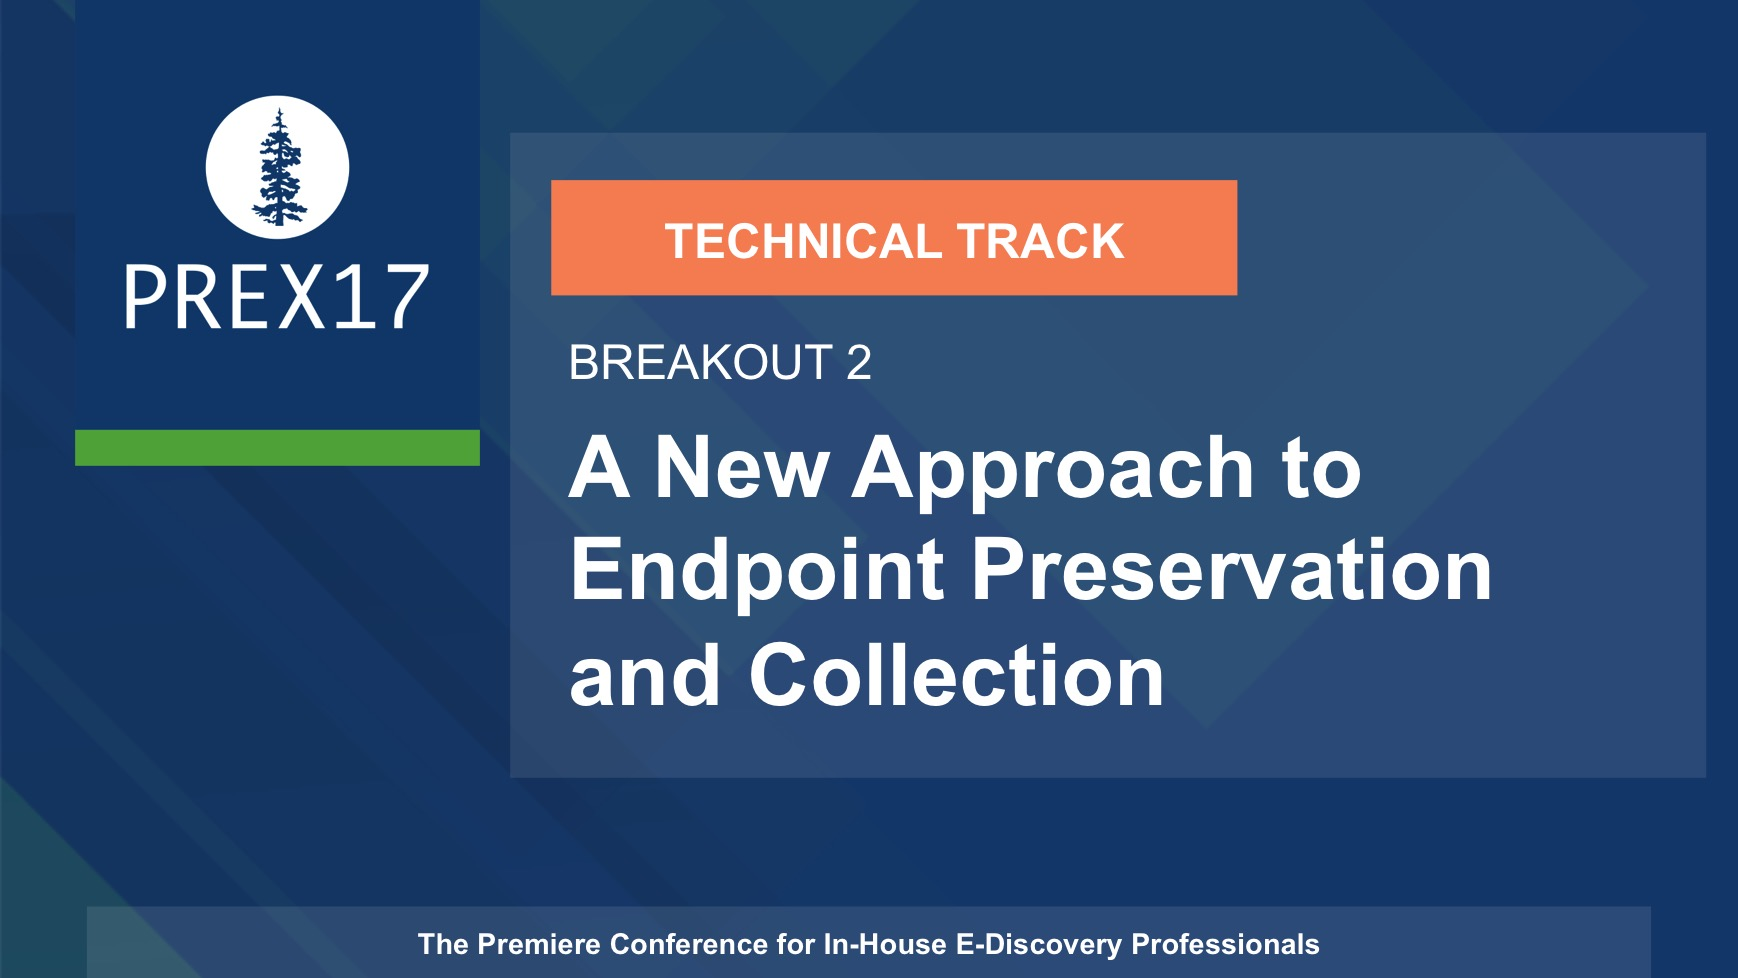 (Breakout 2 - Technical) A New Approach to Endpoint Preservation and Collection